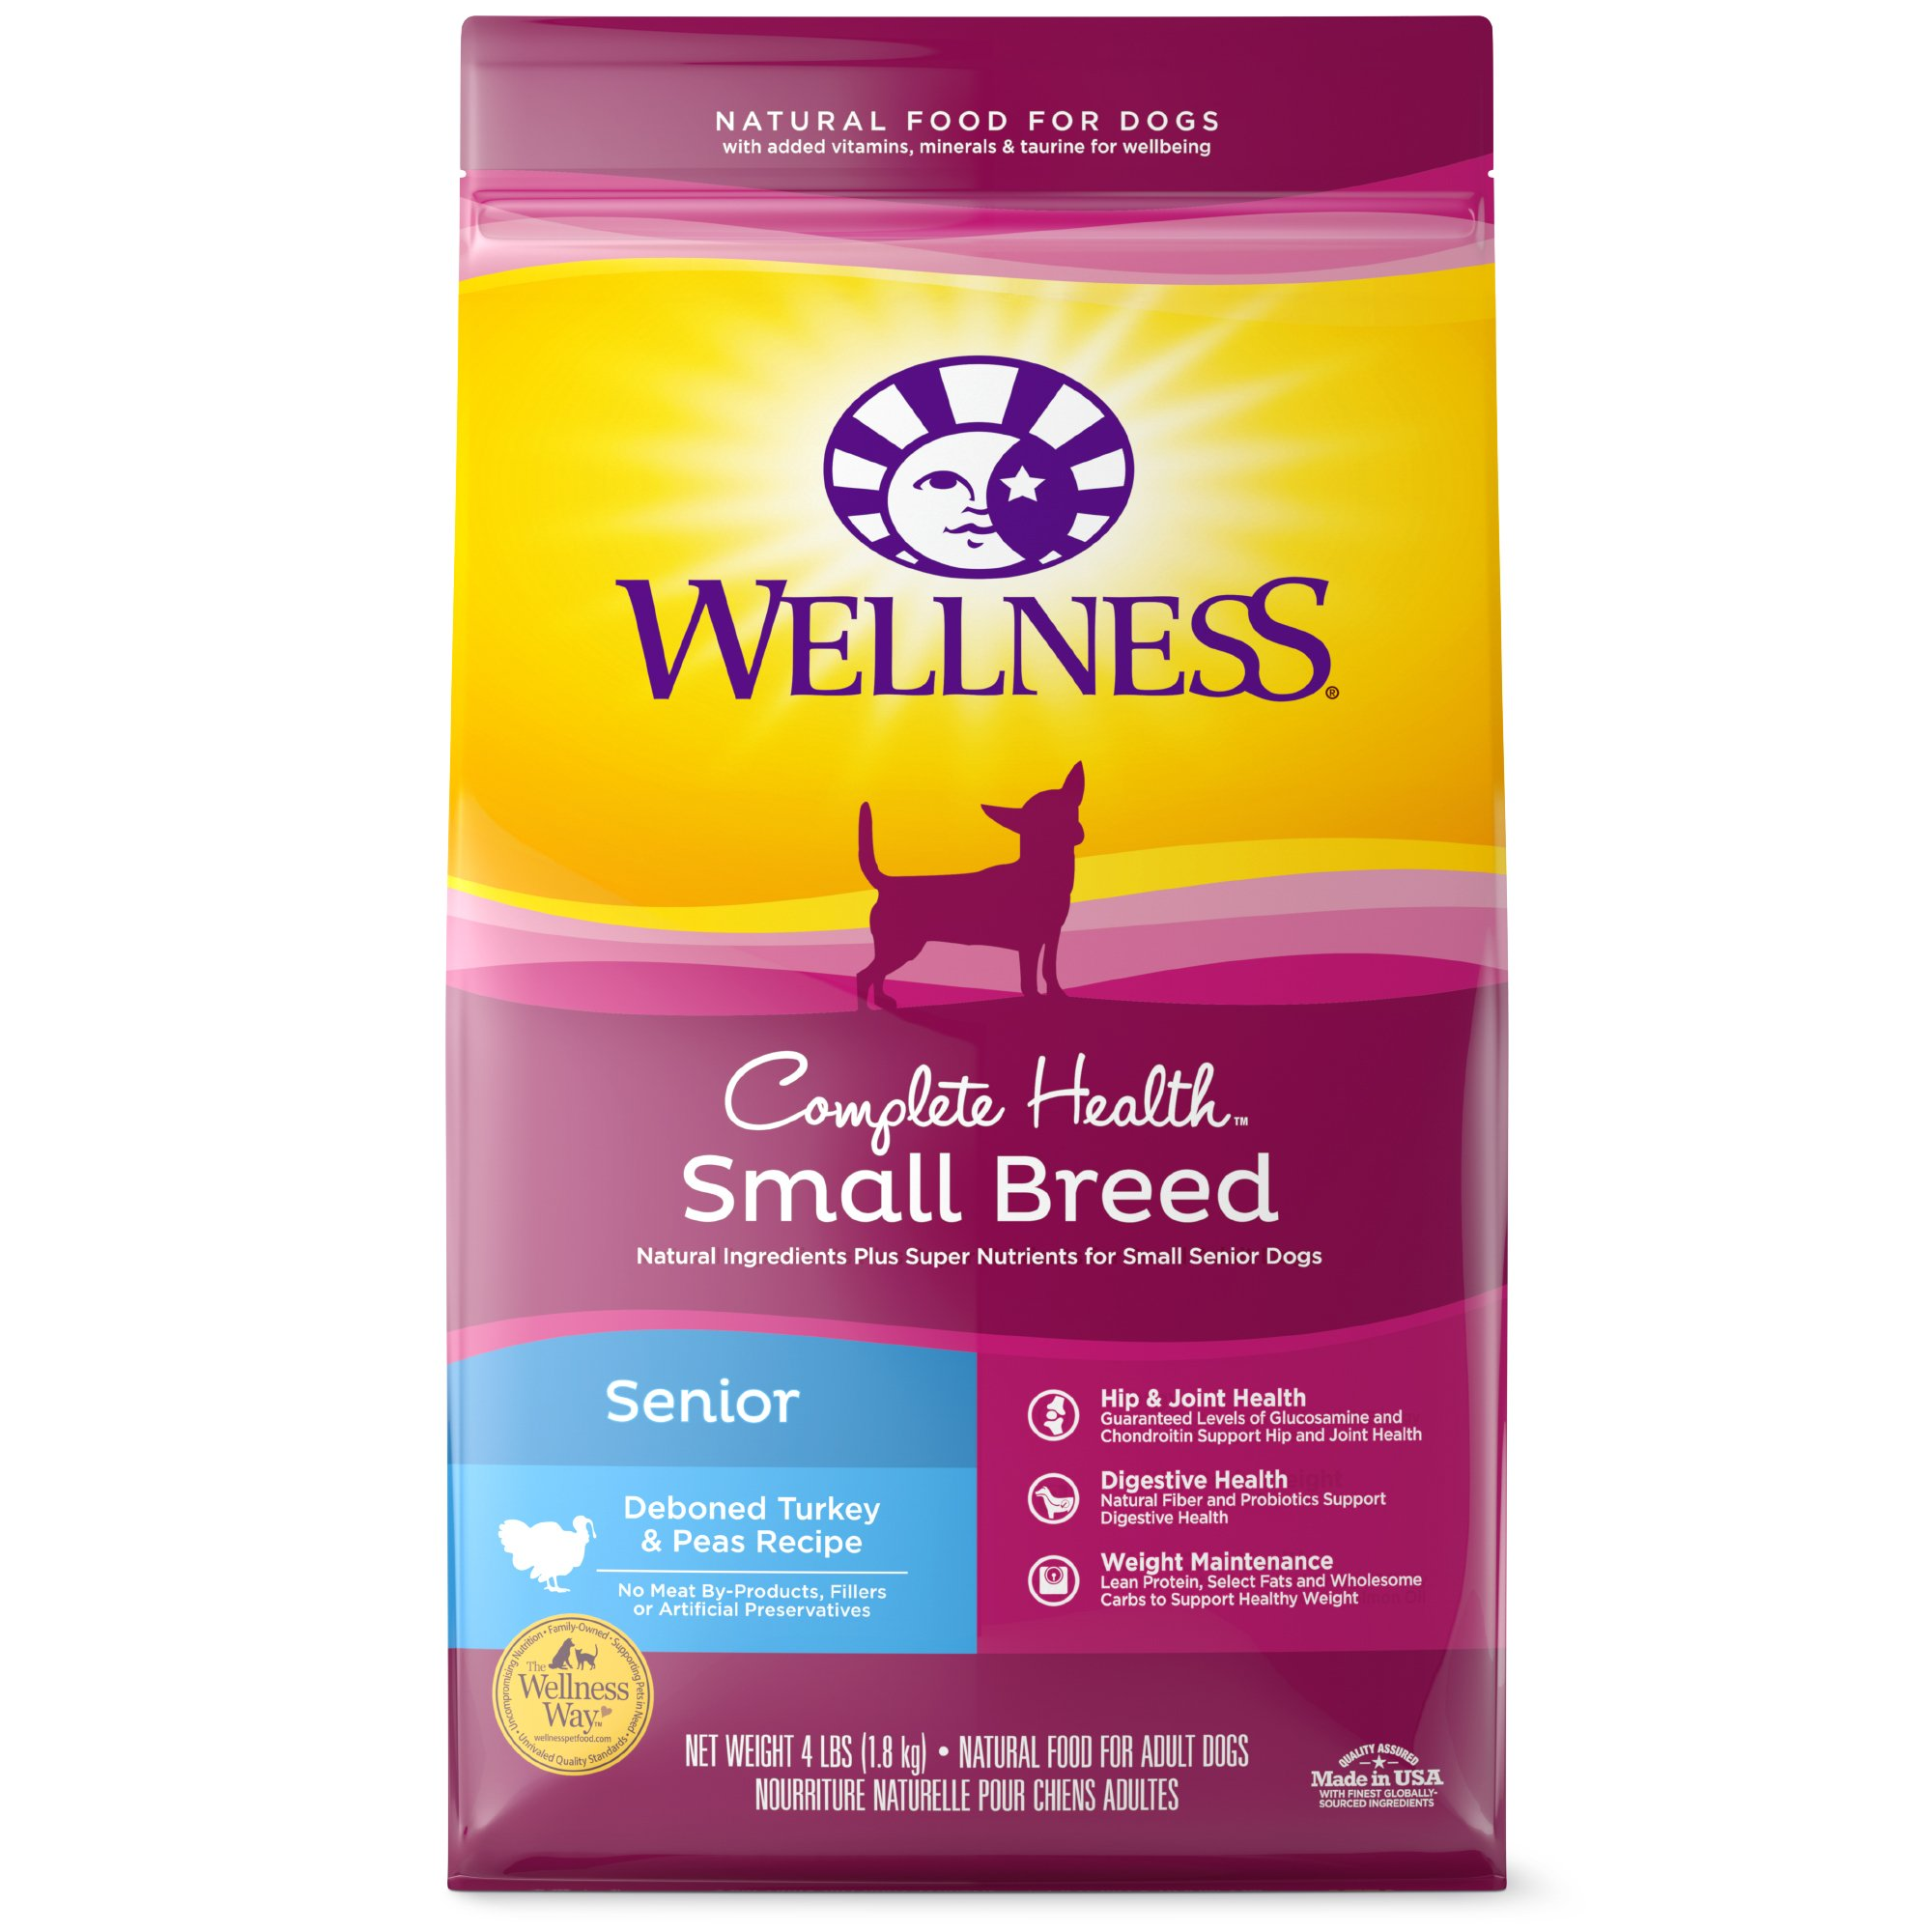 Wellness Complete Health Natural Small Breed Senior Health